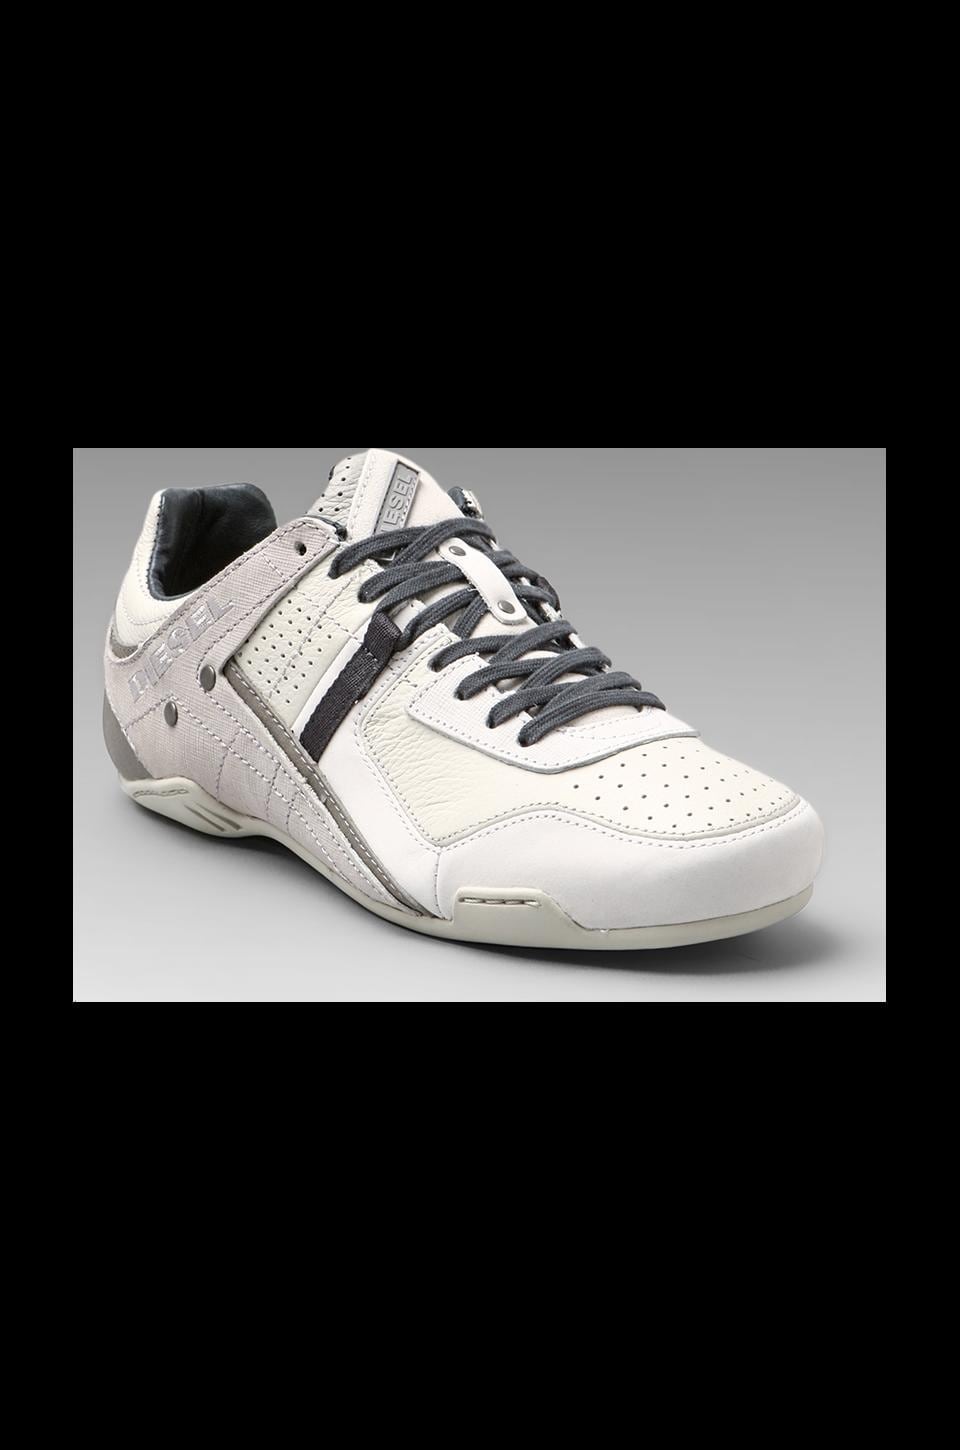 Diesel Trackkers Korbin II in White/Silver Birch/Paloma